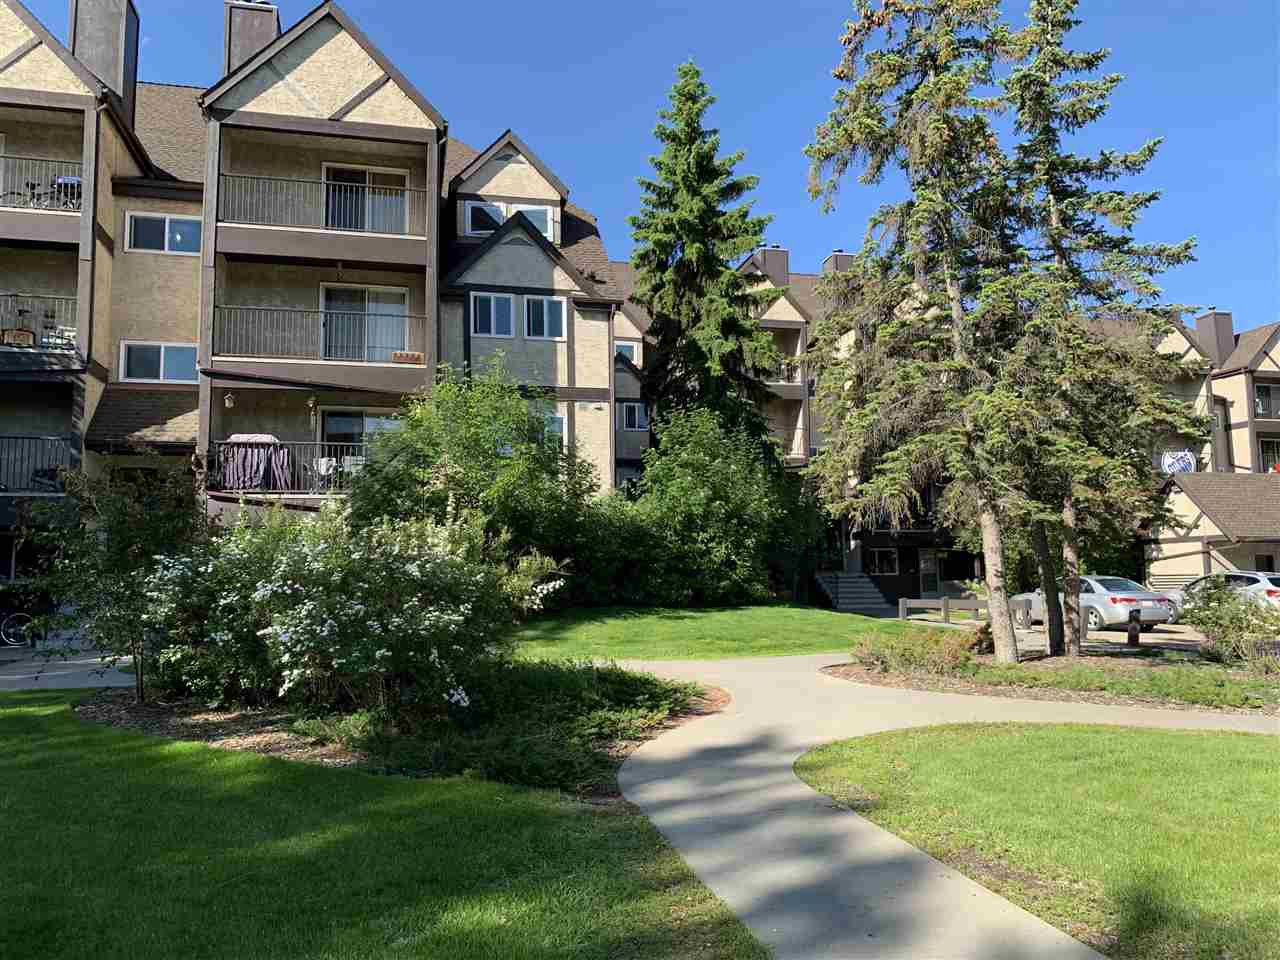 Main Photo: 8013 TUDOR Glen: St. Albert Condo for sale : MLS®# E4201737